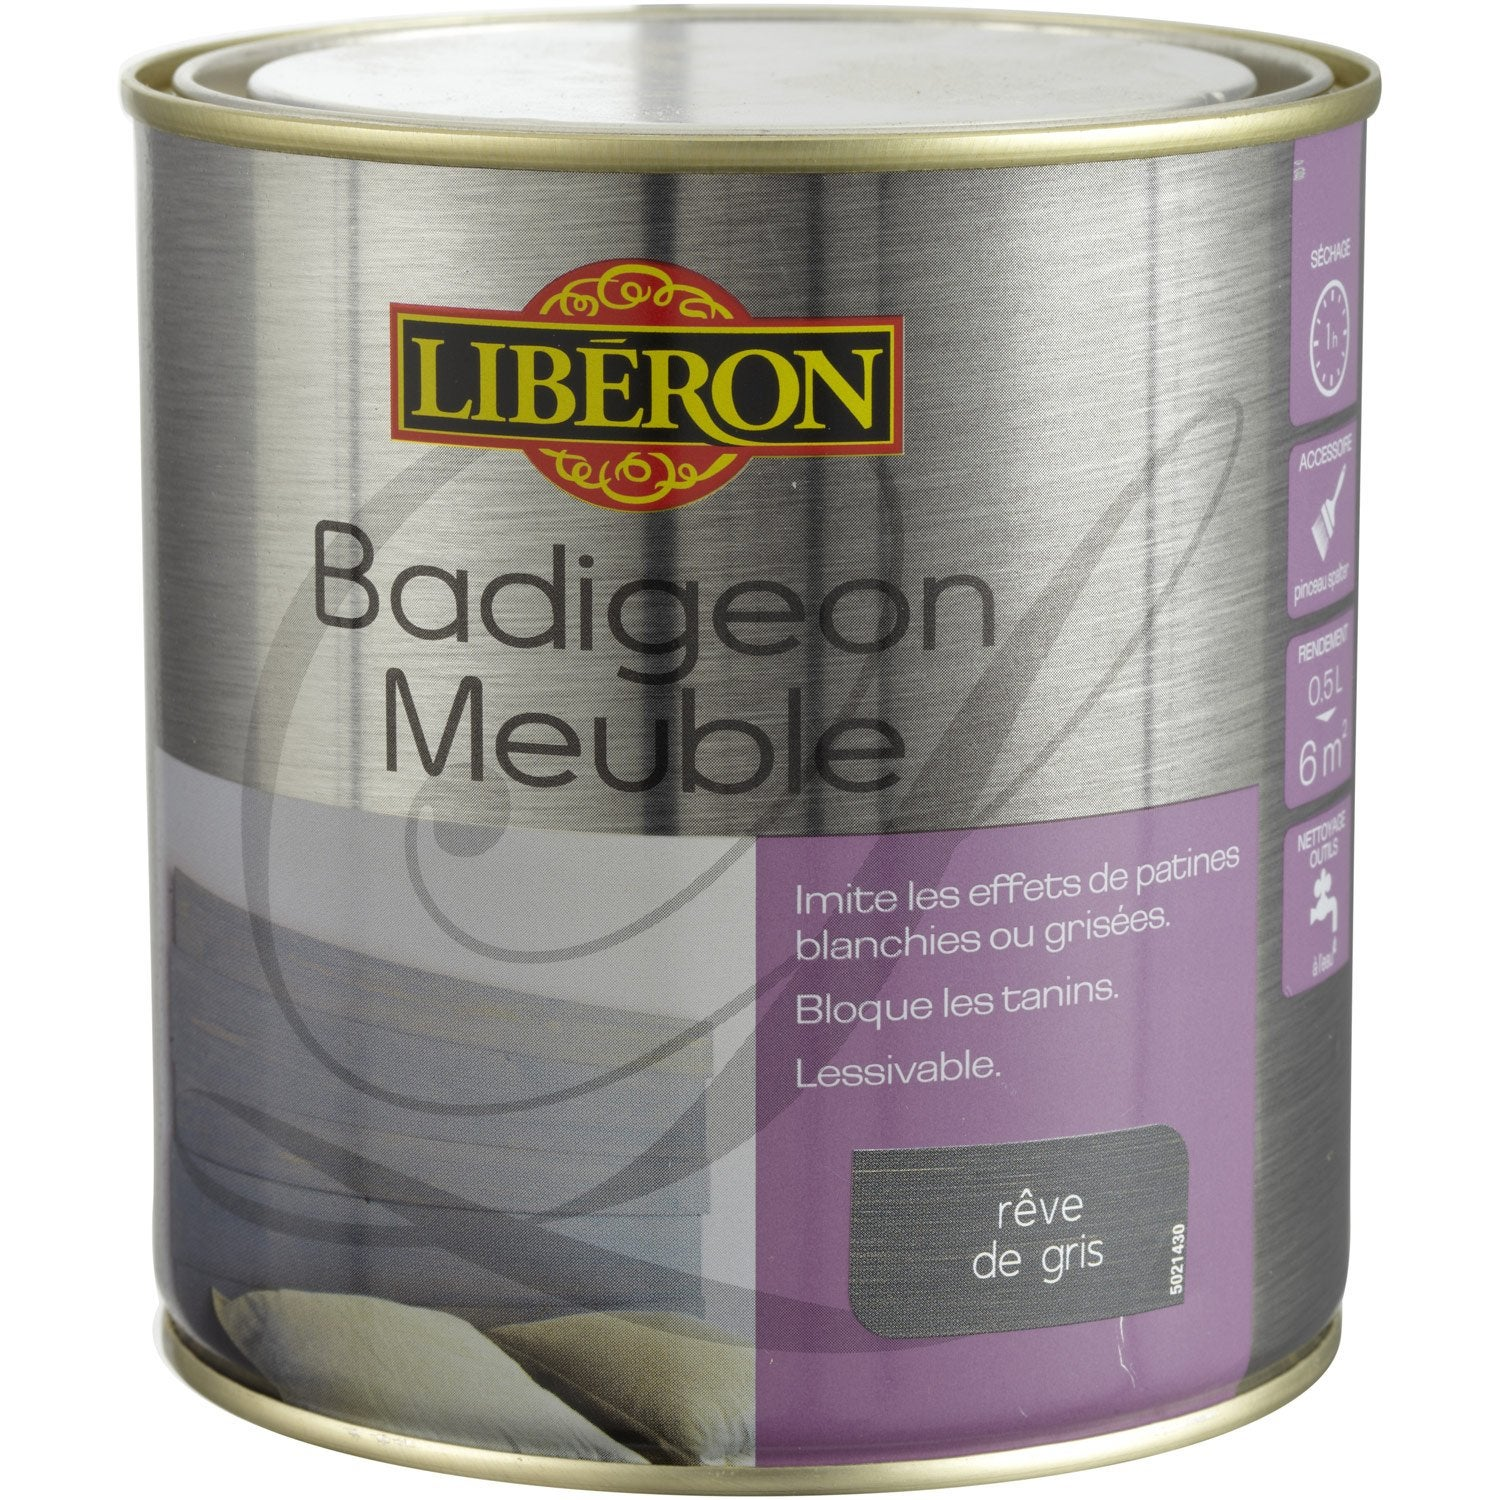 Lasure badigeon meuble liberon r ve de gris 0 5 l for Badigeon meuble liberon